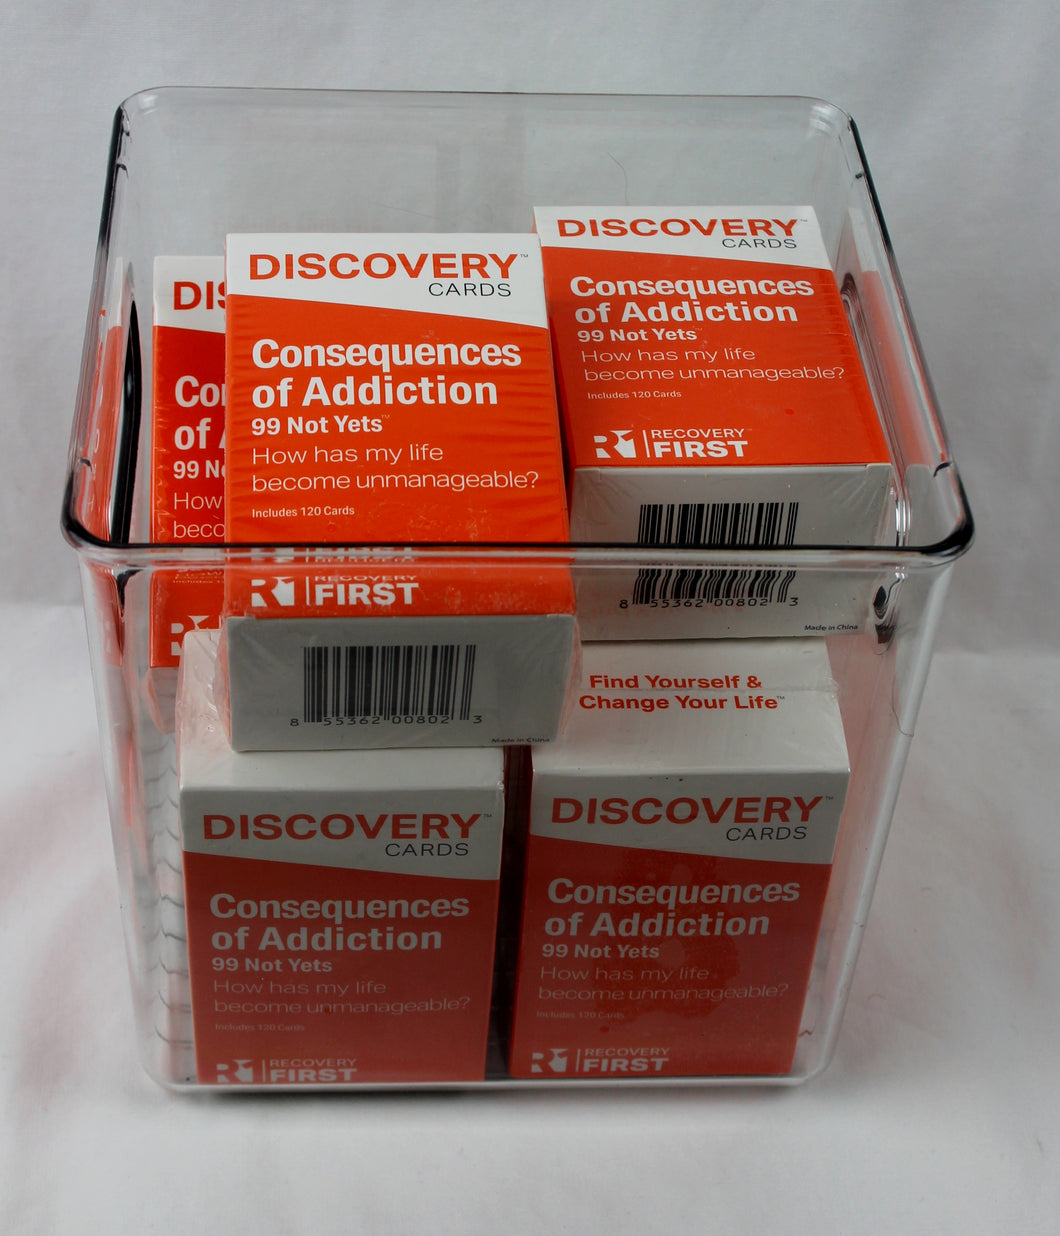 Discovery Cards Consequences of Addiction Bucket - 10 Decks